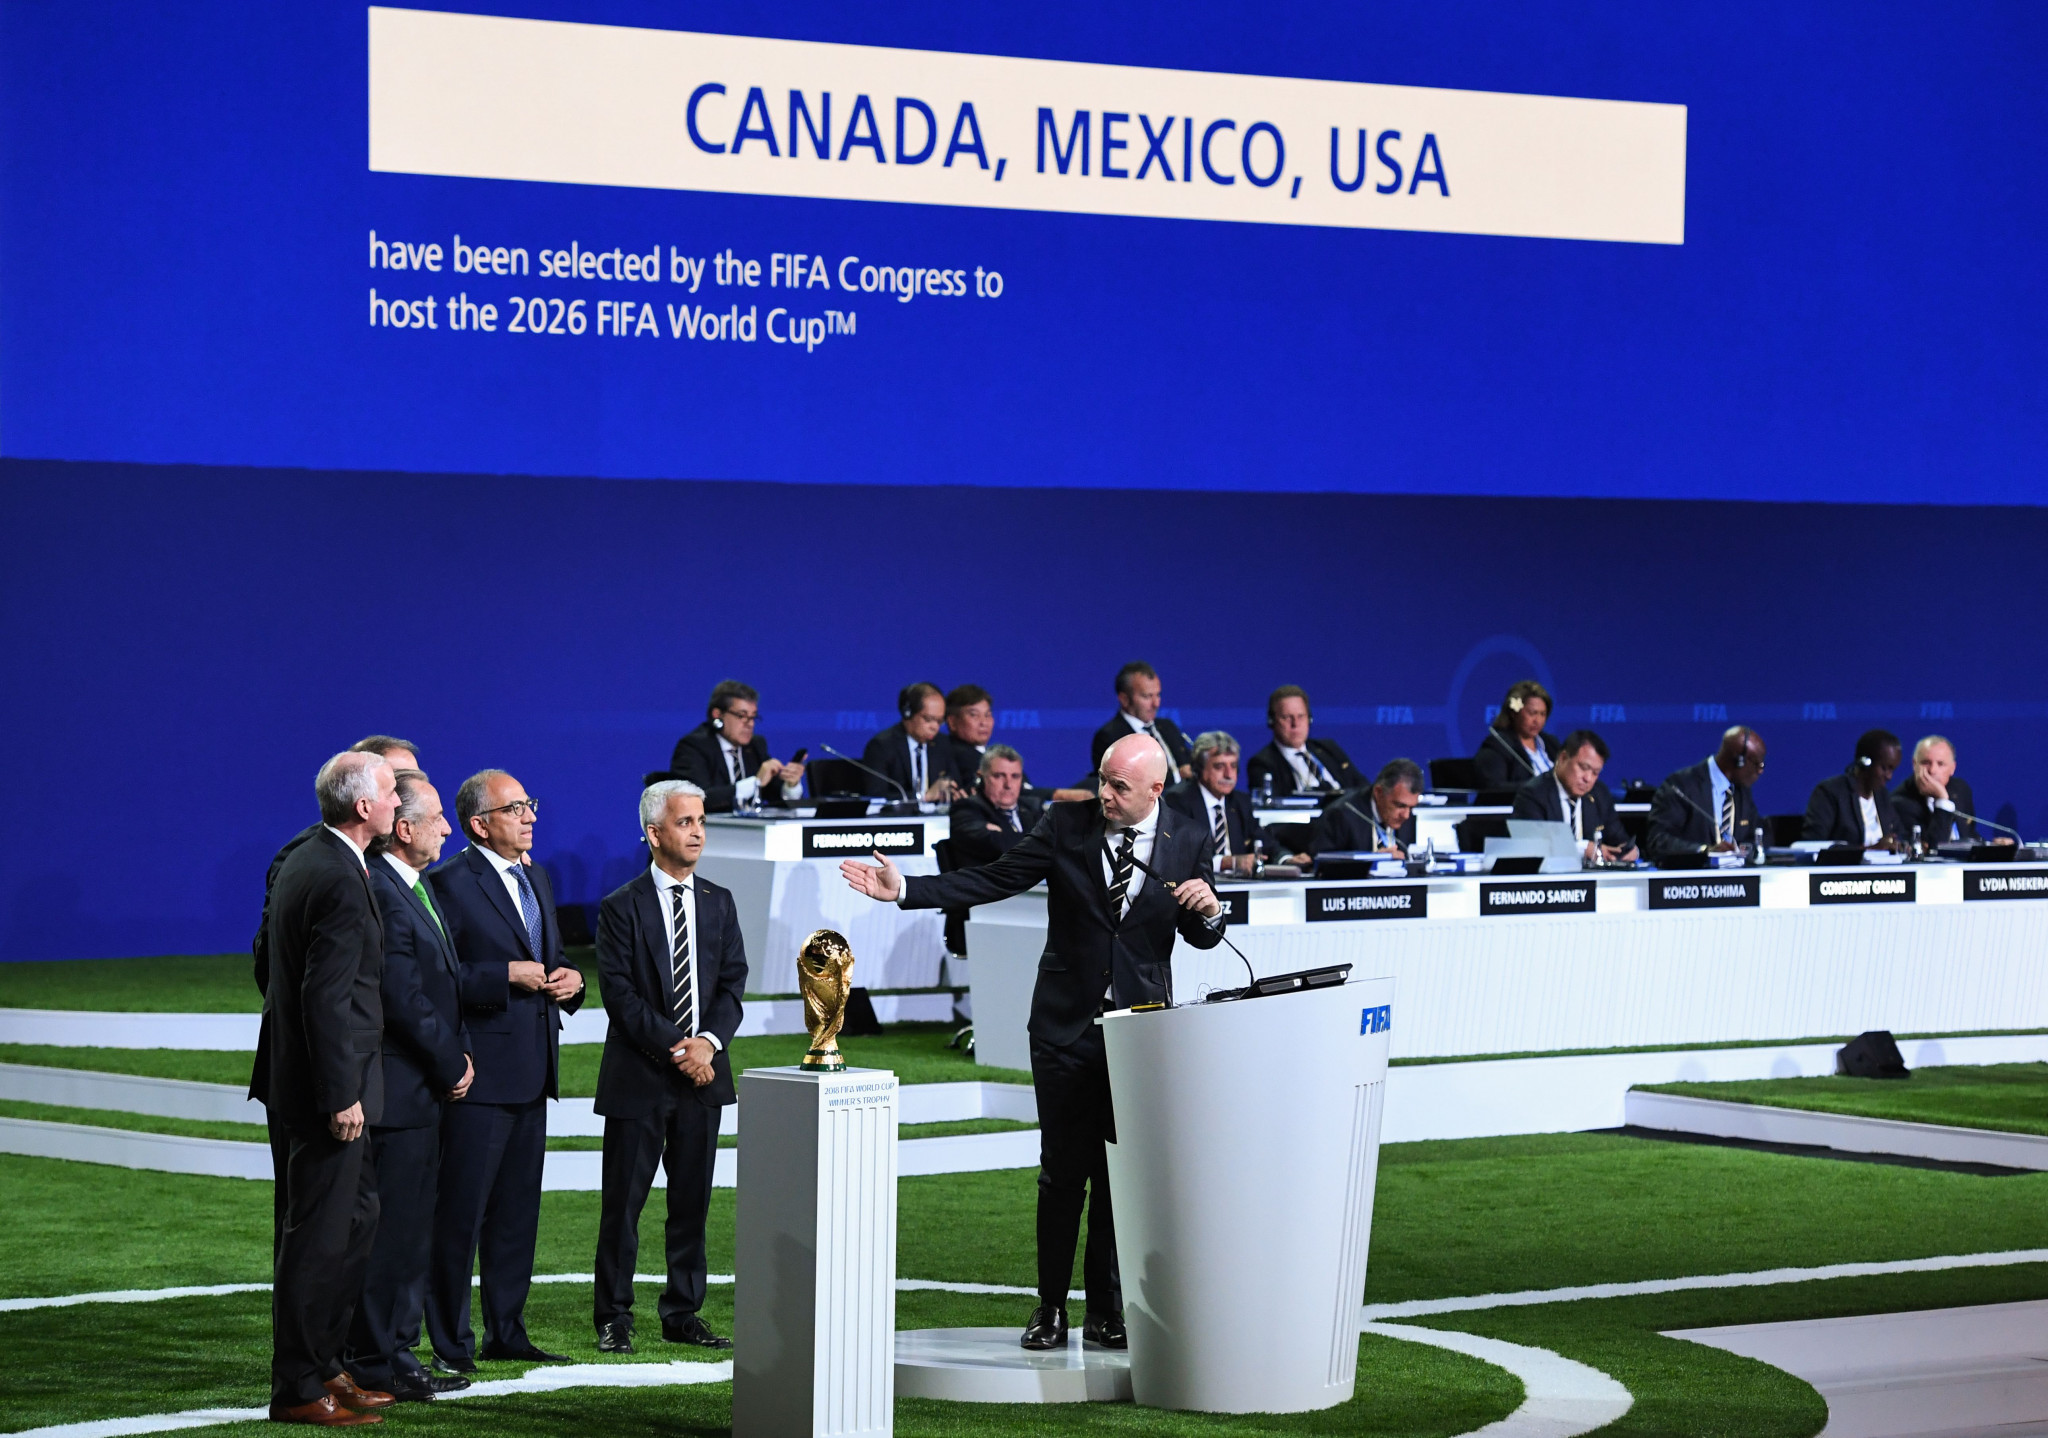 Victor Montagliani was involved in the successful North American bid for the 2026 FIFA World Cup ©Getty Images